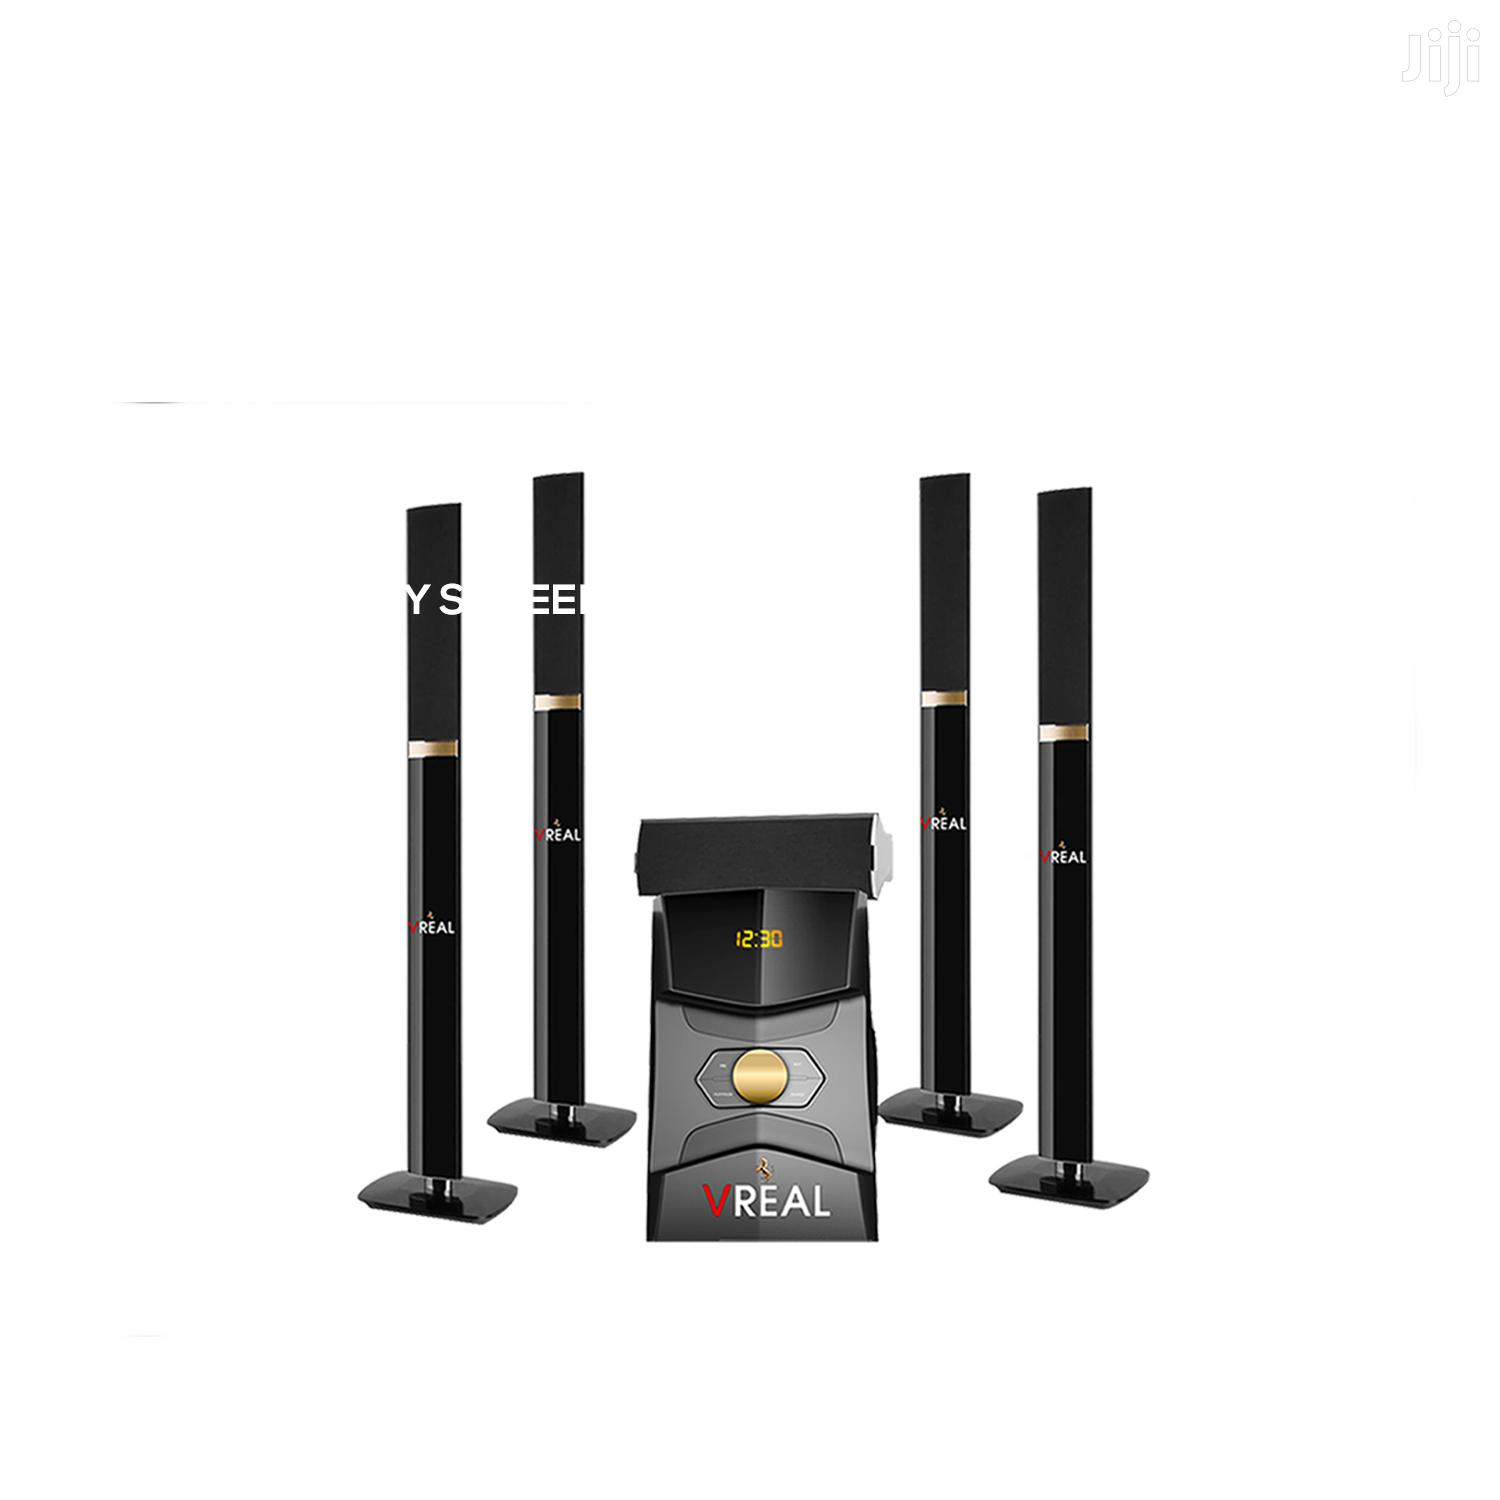 Vreal 5.1 Channel Home Theater System